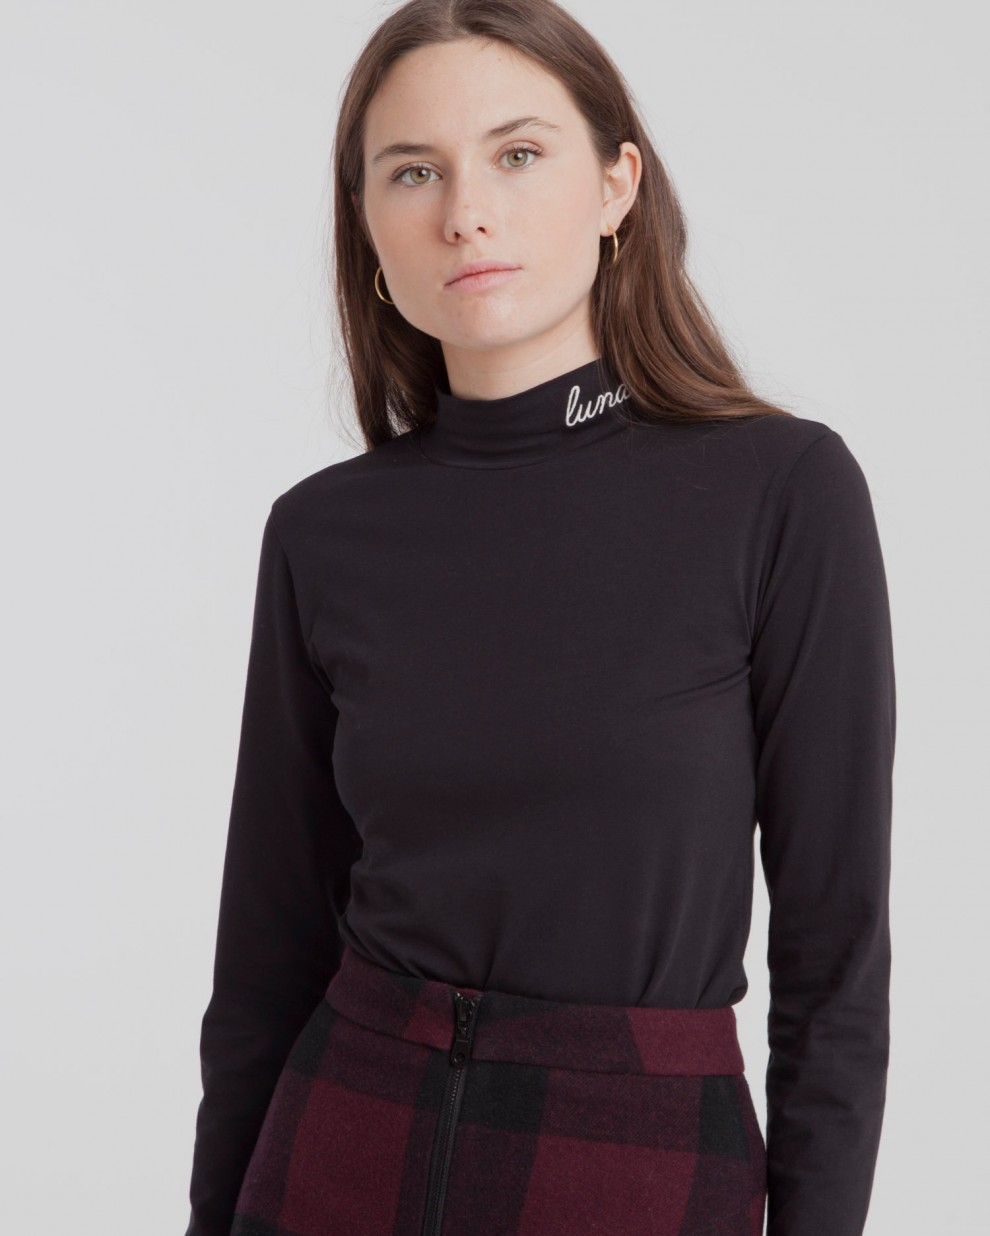 Lunatic Turtleneck Top